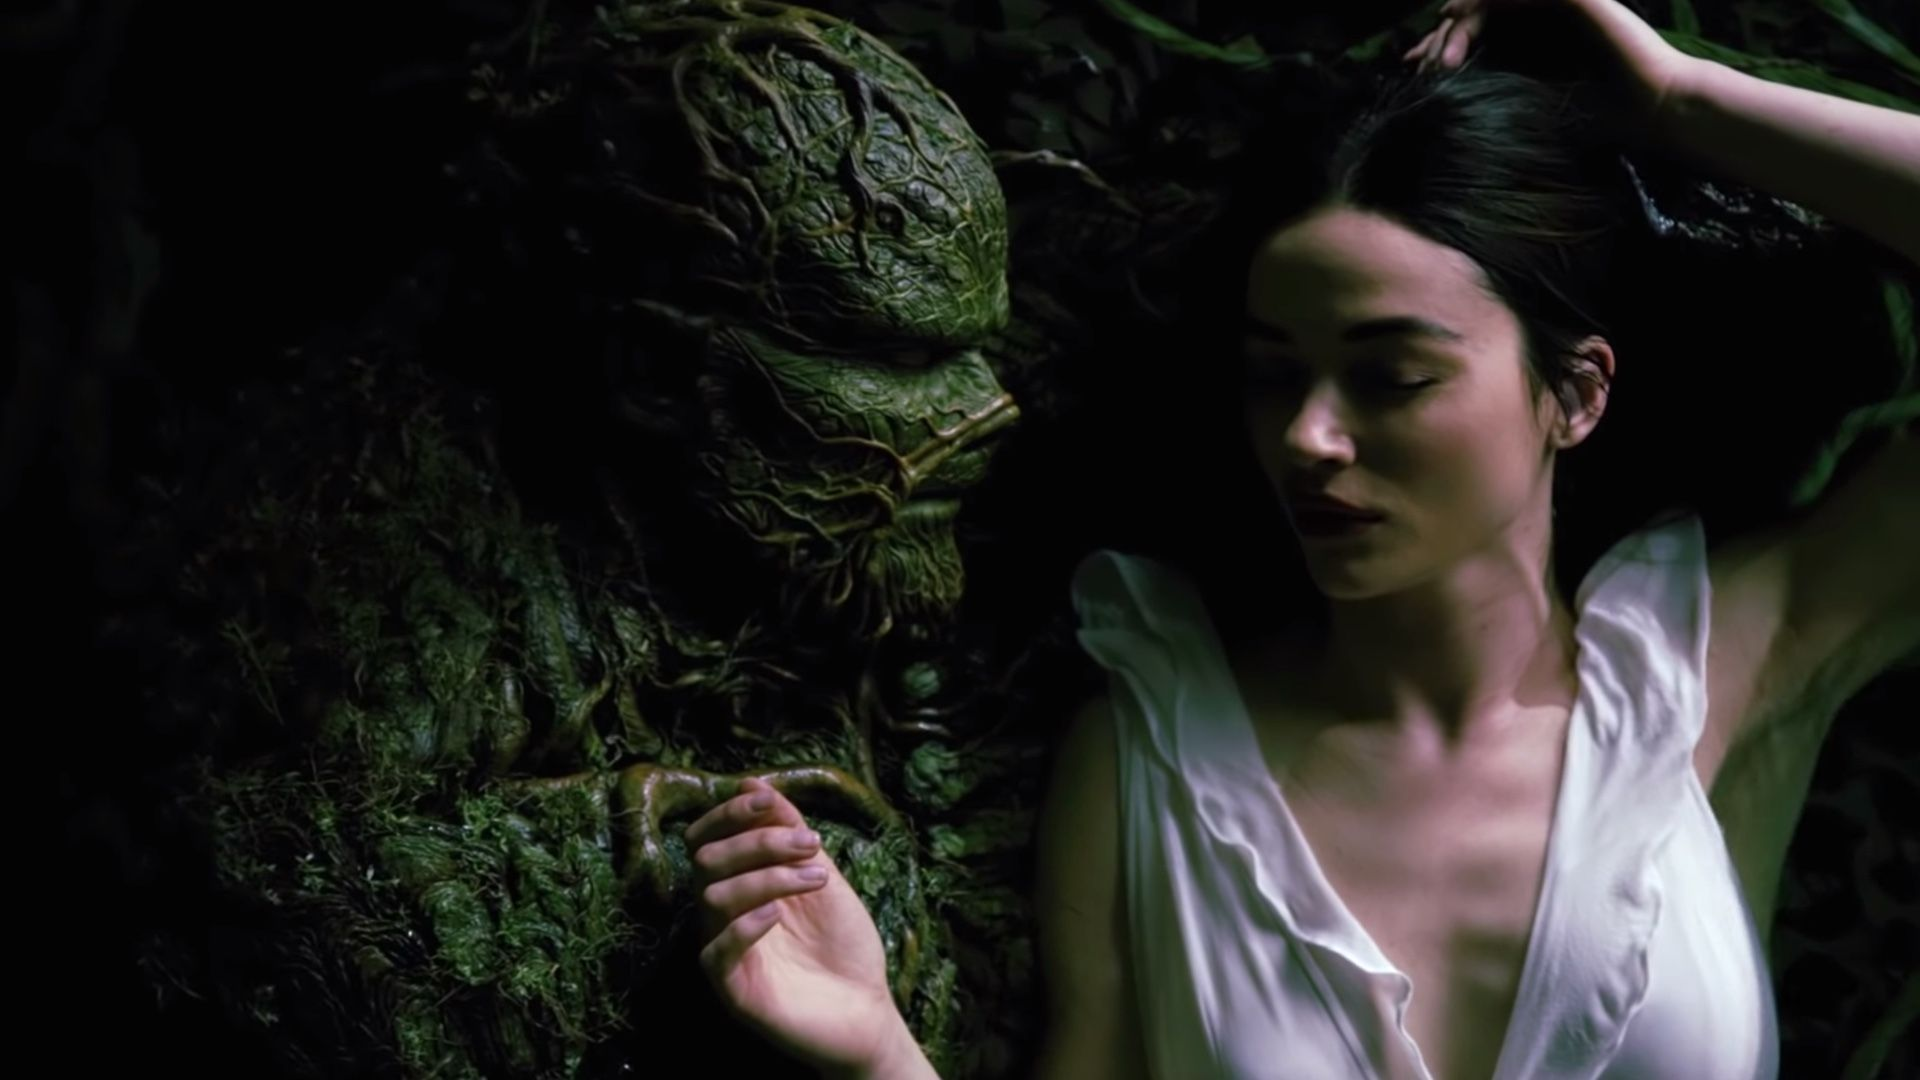 DC's SWAMP THING Series Gets a Romantic New Promo Spot - Swamp Thing Water Embrace — GeekTyrant #swampthing